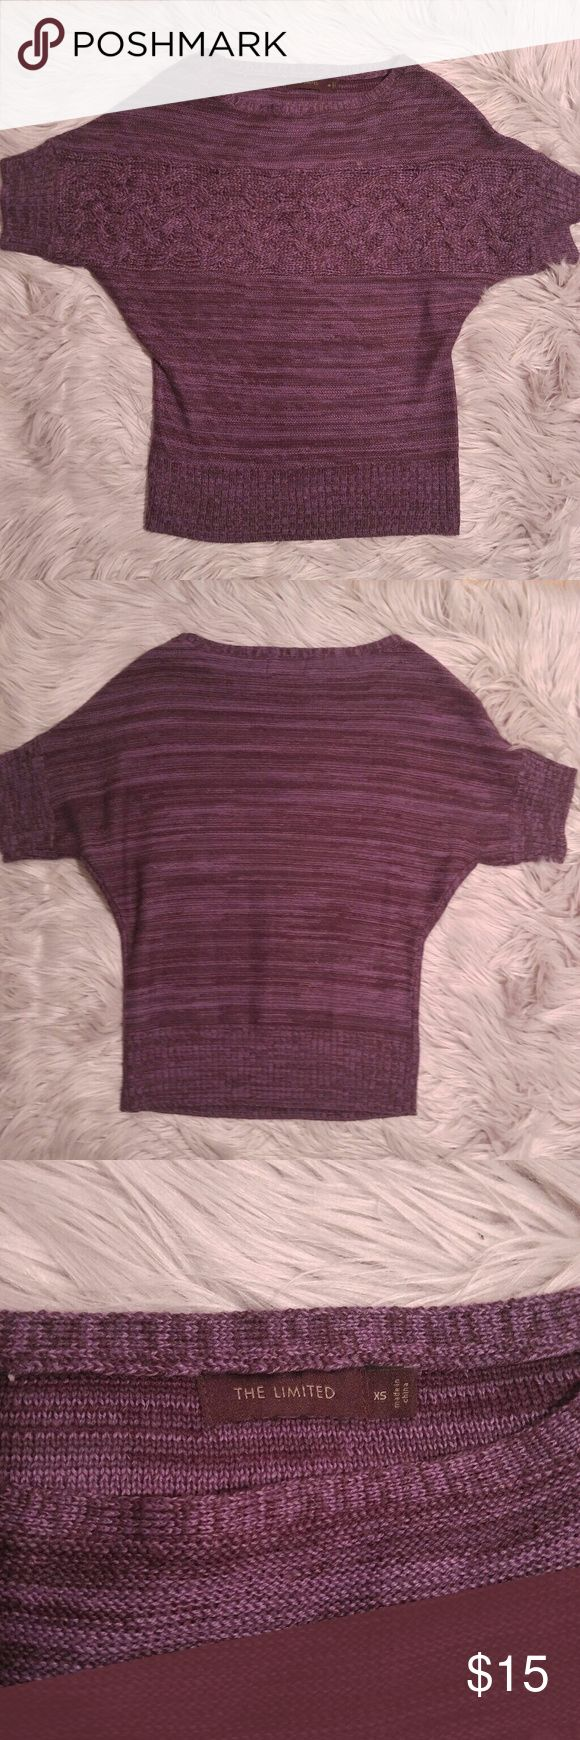 The Limited Knit Purple Tee The Limited Knit Purple Tee Cabled front Size XS EUC The Limited Tops Tees - Short Sleeve